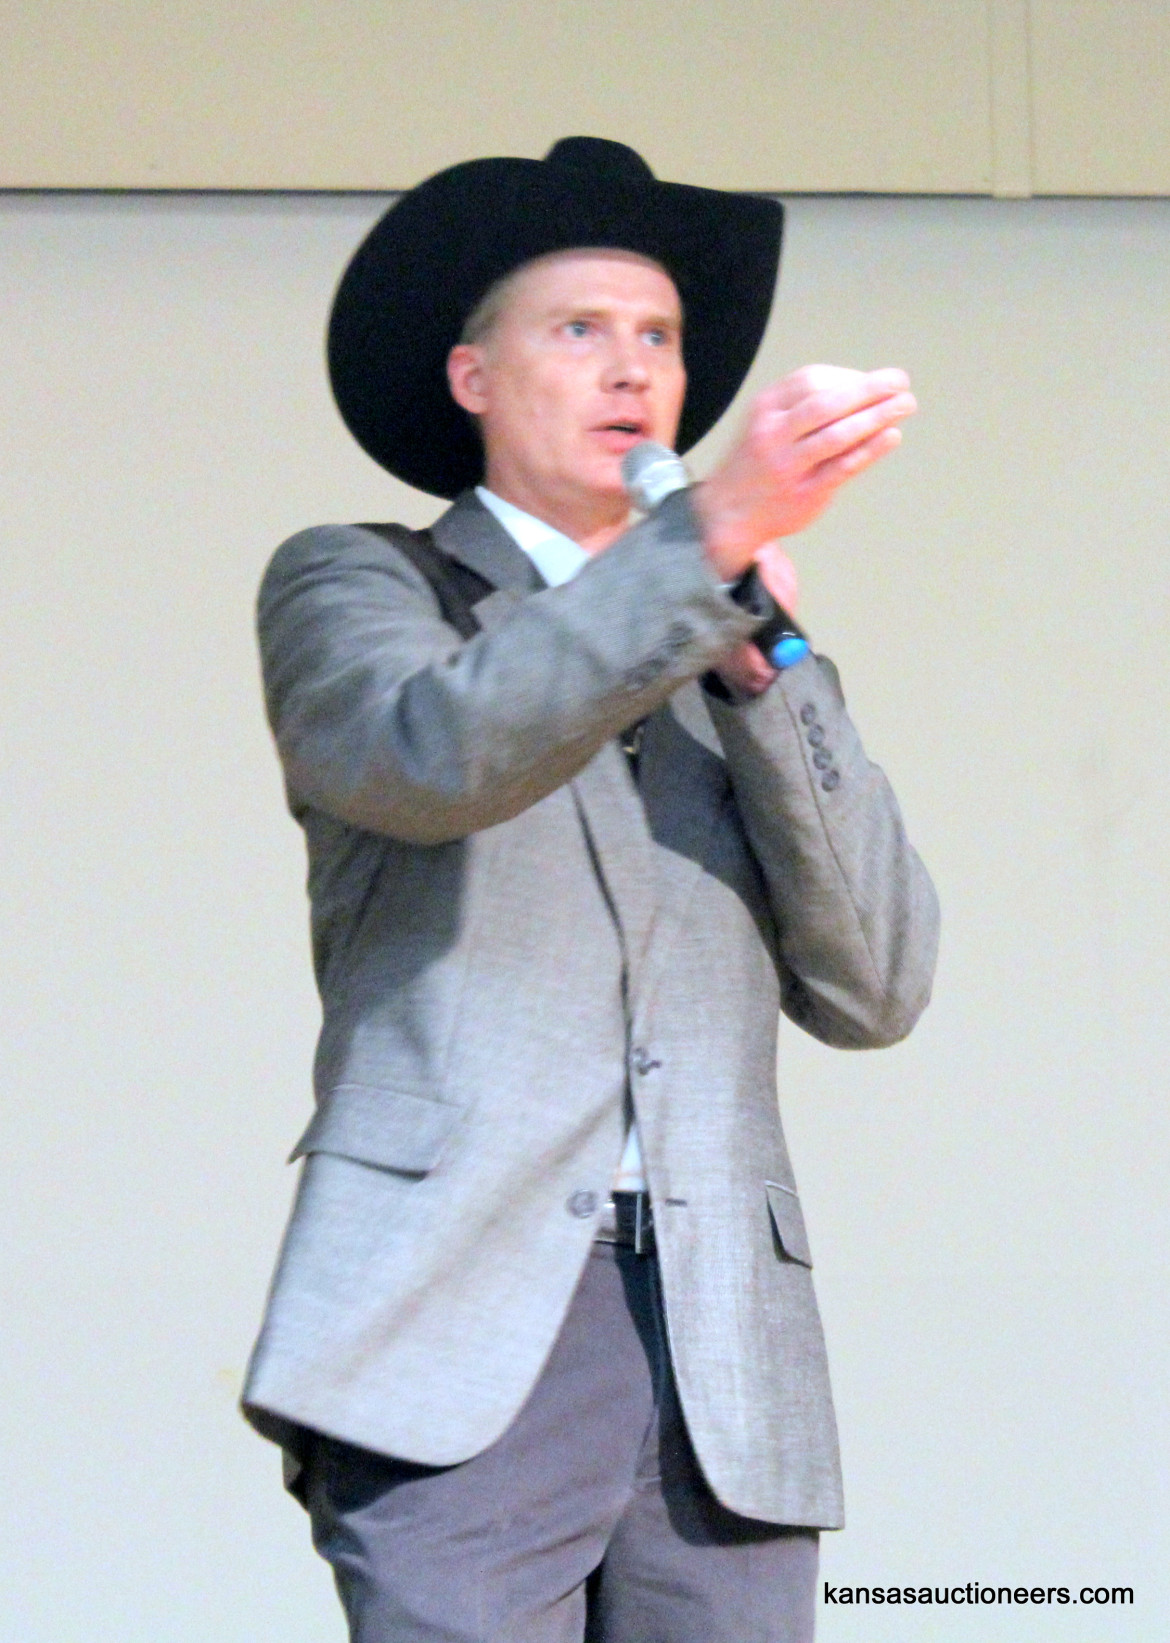 Troy Wedel competing in the 2016 Kansas Auctioneer Preliminaries.